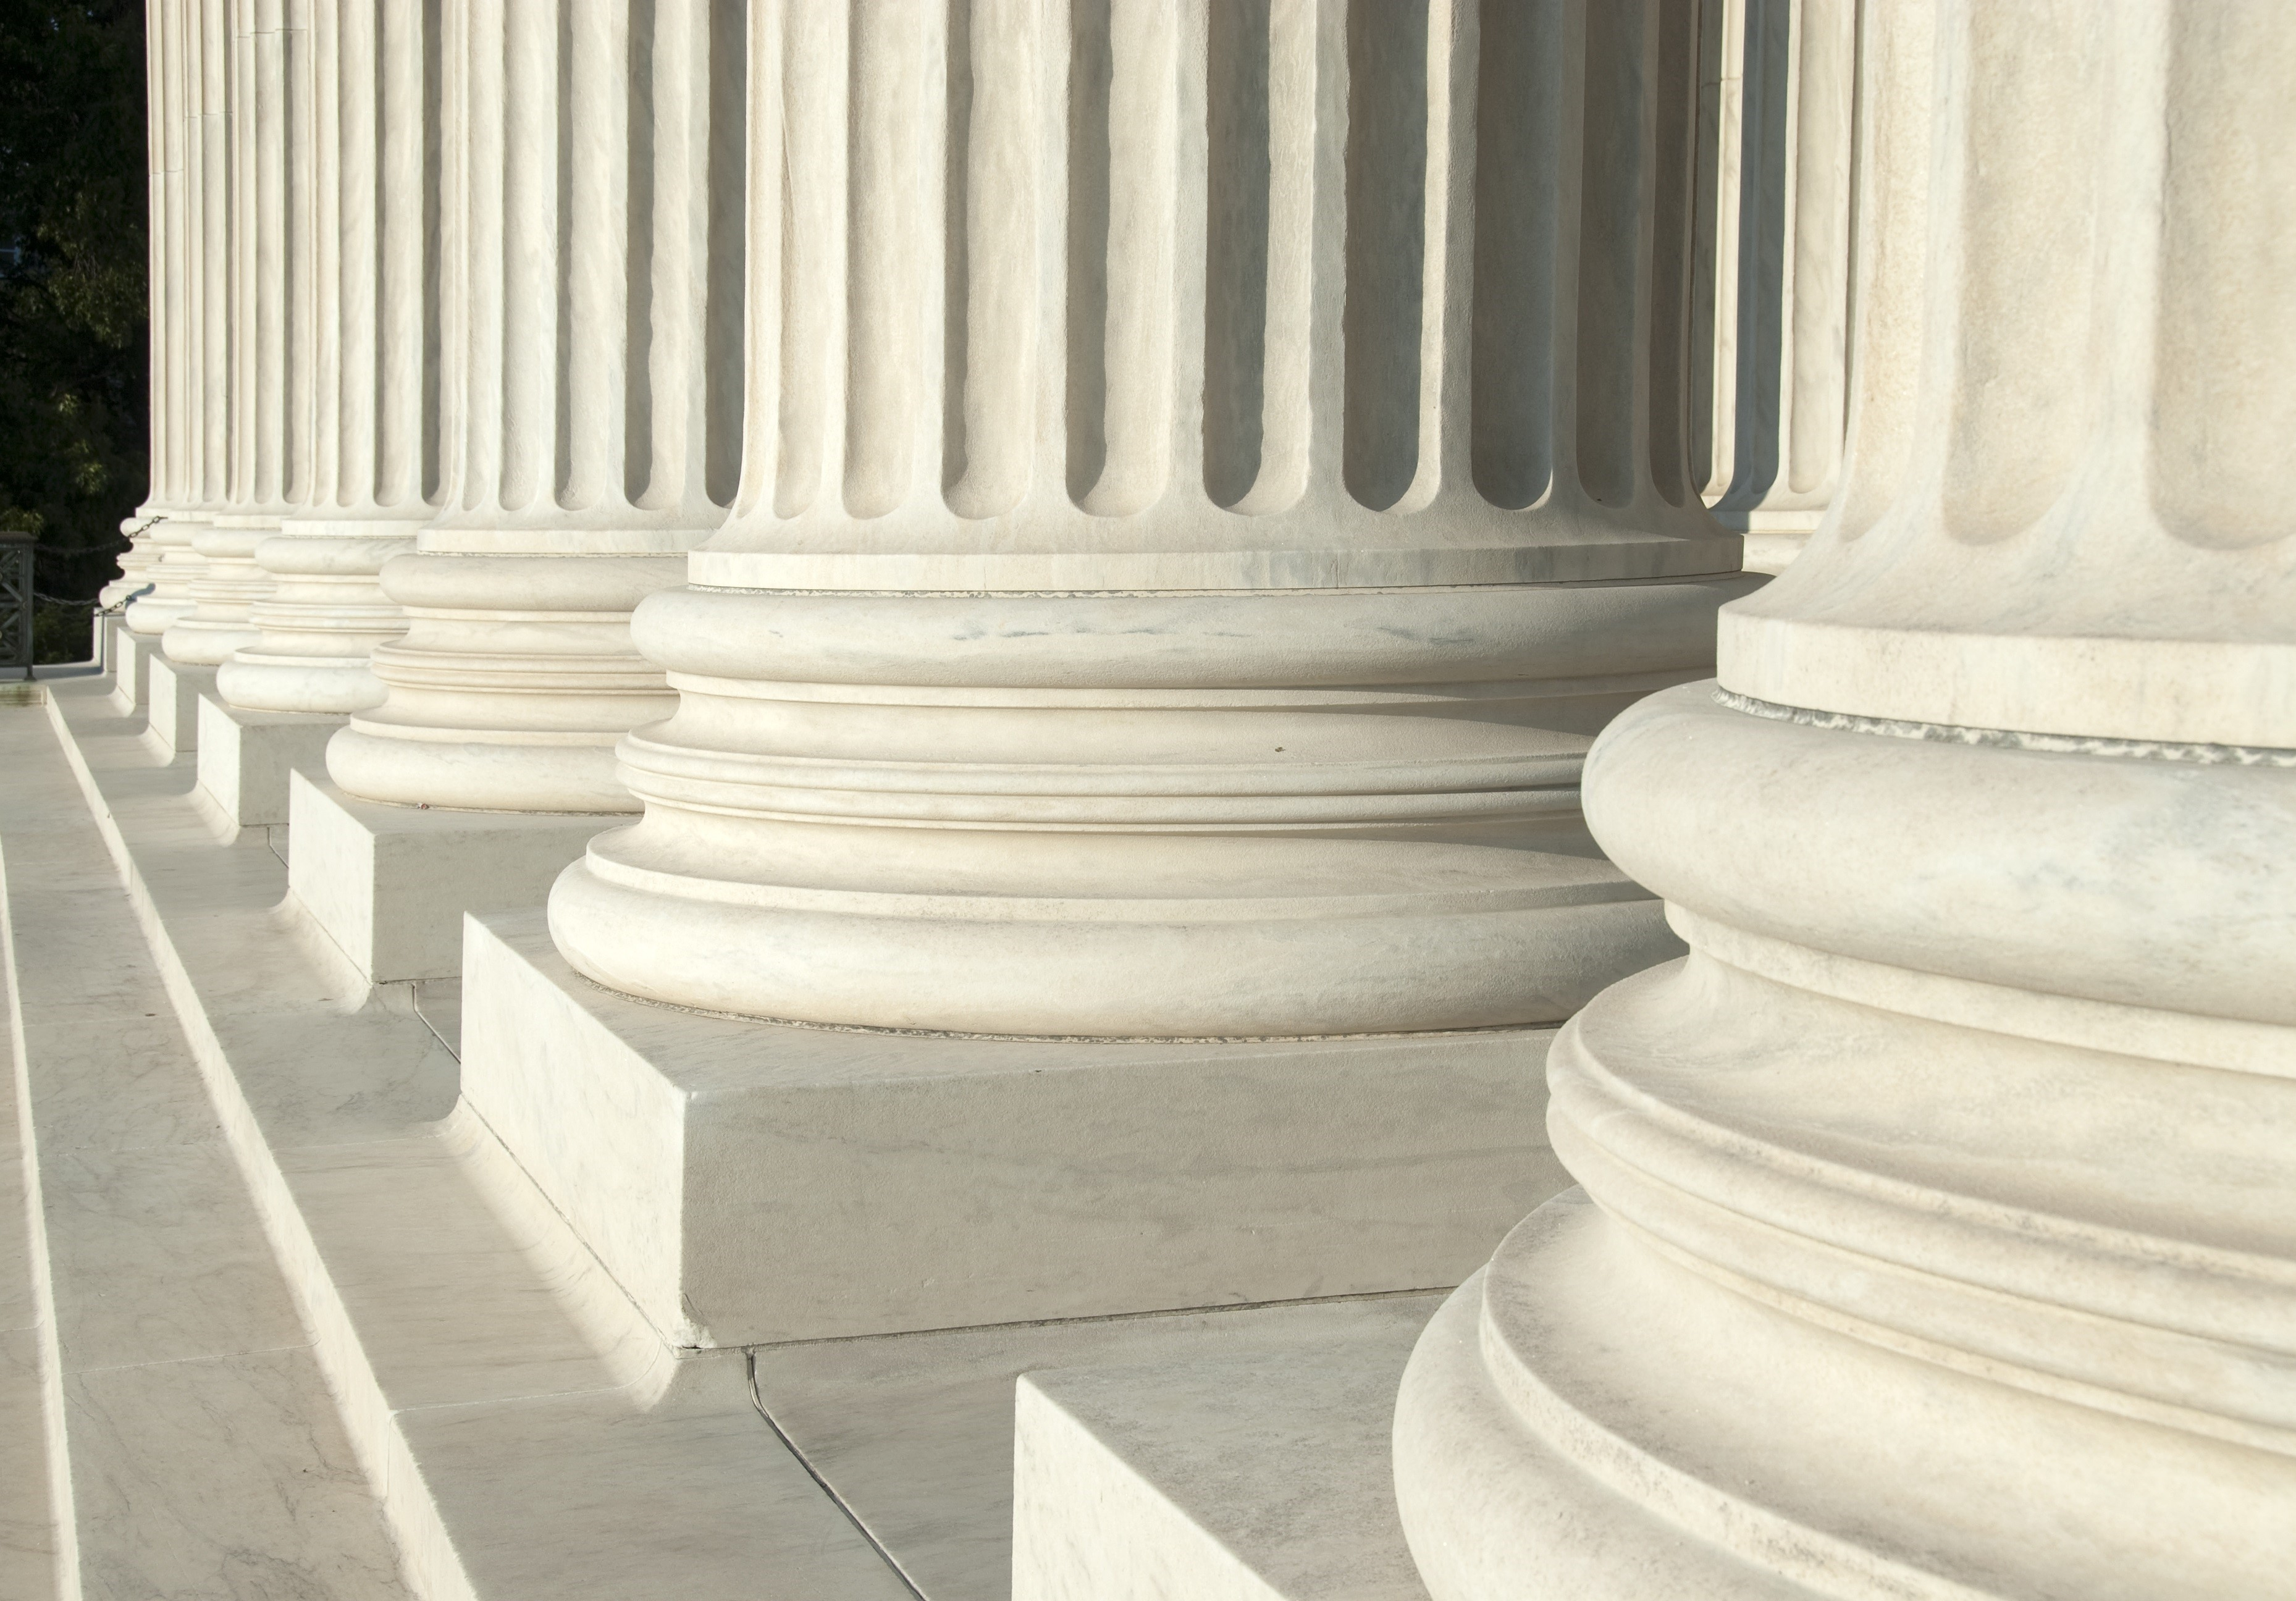 New Jersey Appellate Lawyers | Civil Appeals Attorneys in NJ